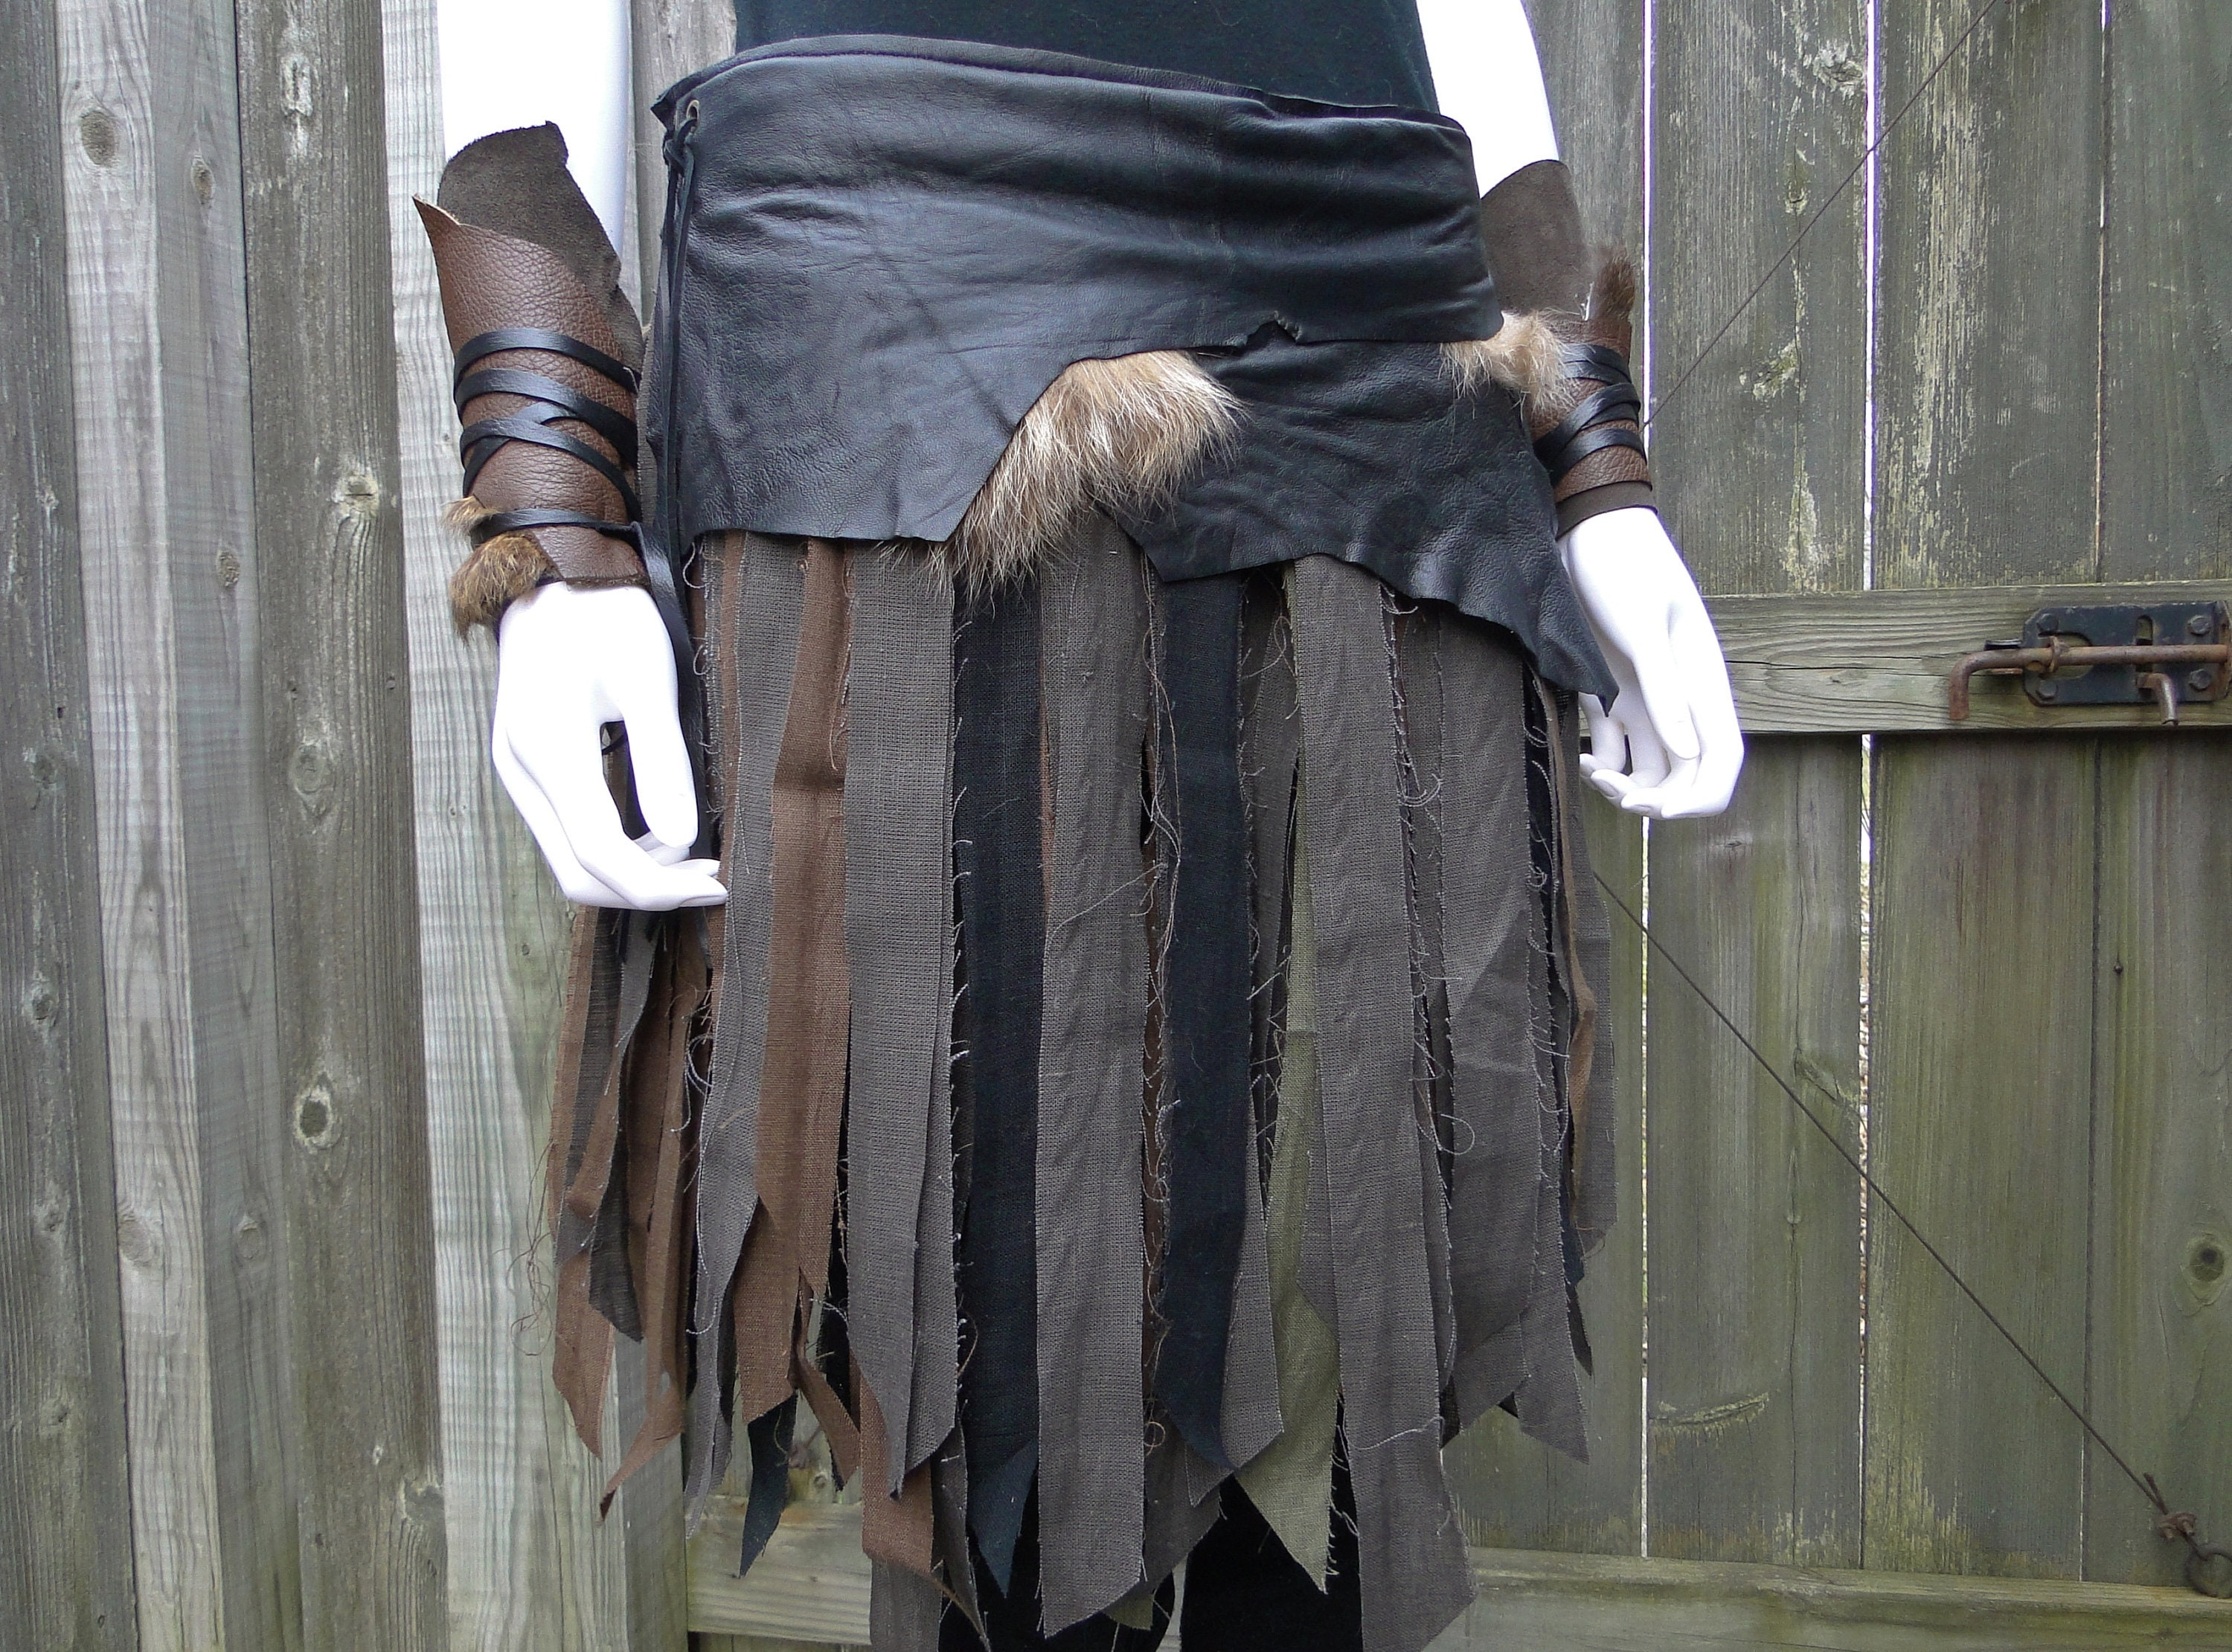 Two Styles in One AFRICAN WRAP SKIRT Warrior Skirt Battle Skirt Era-Kanda Collection Cosplay Accessory